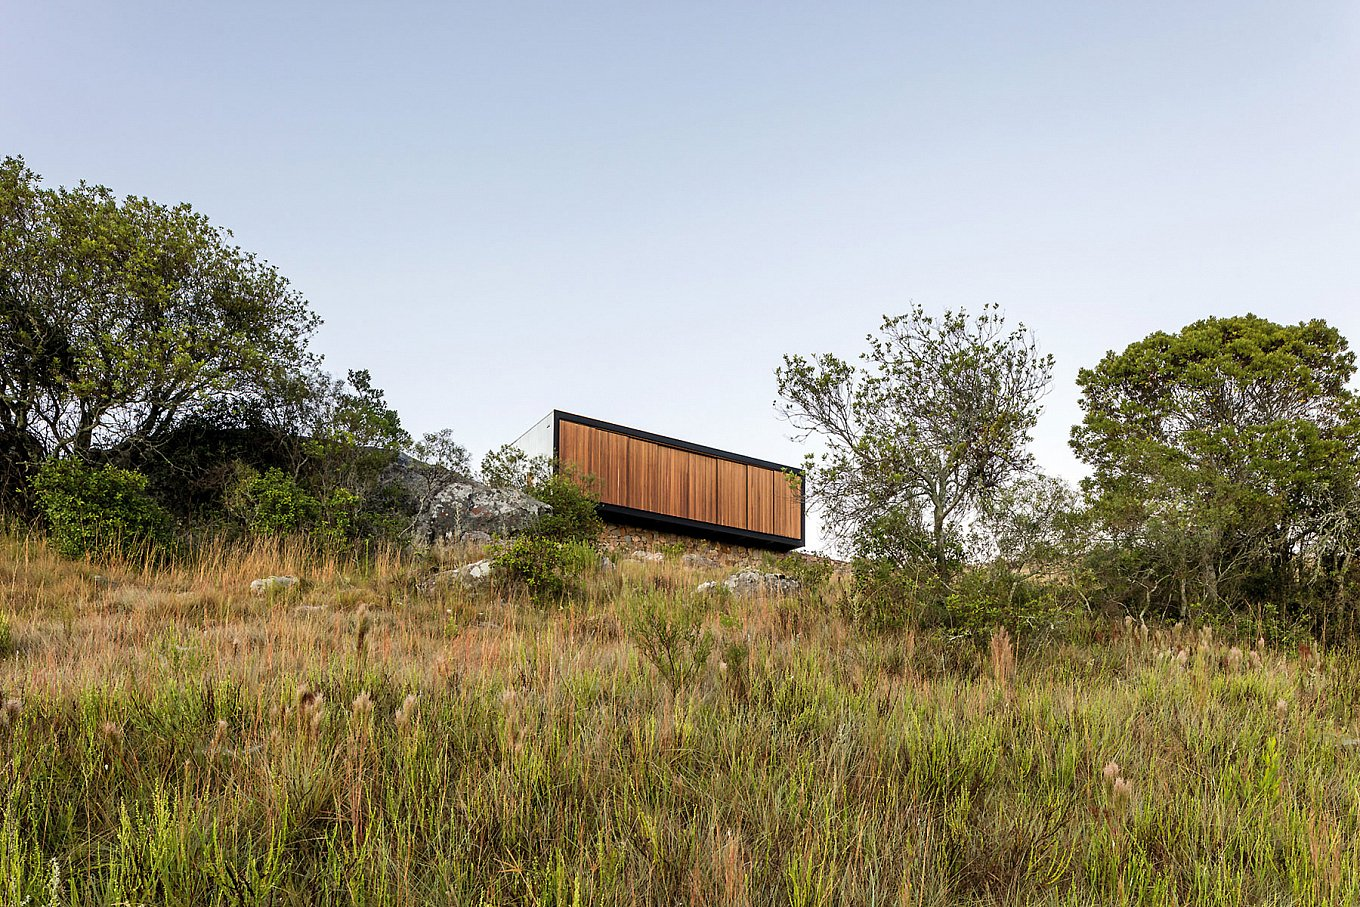 retreat-in-finca-anguy-mapa-architects-gessato-2